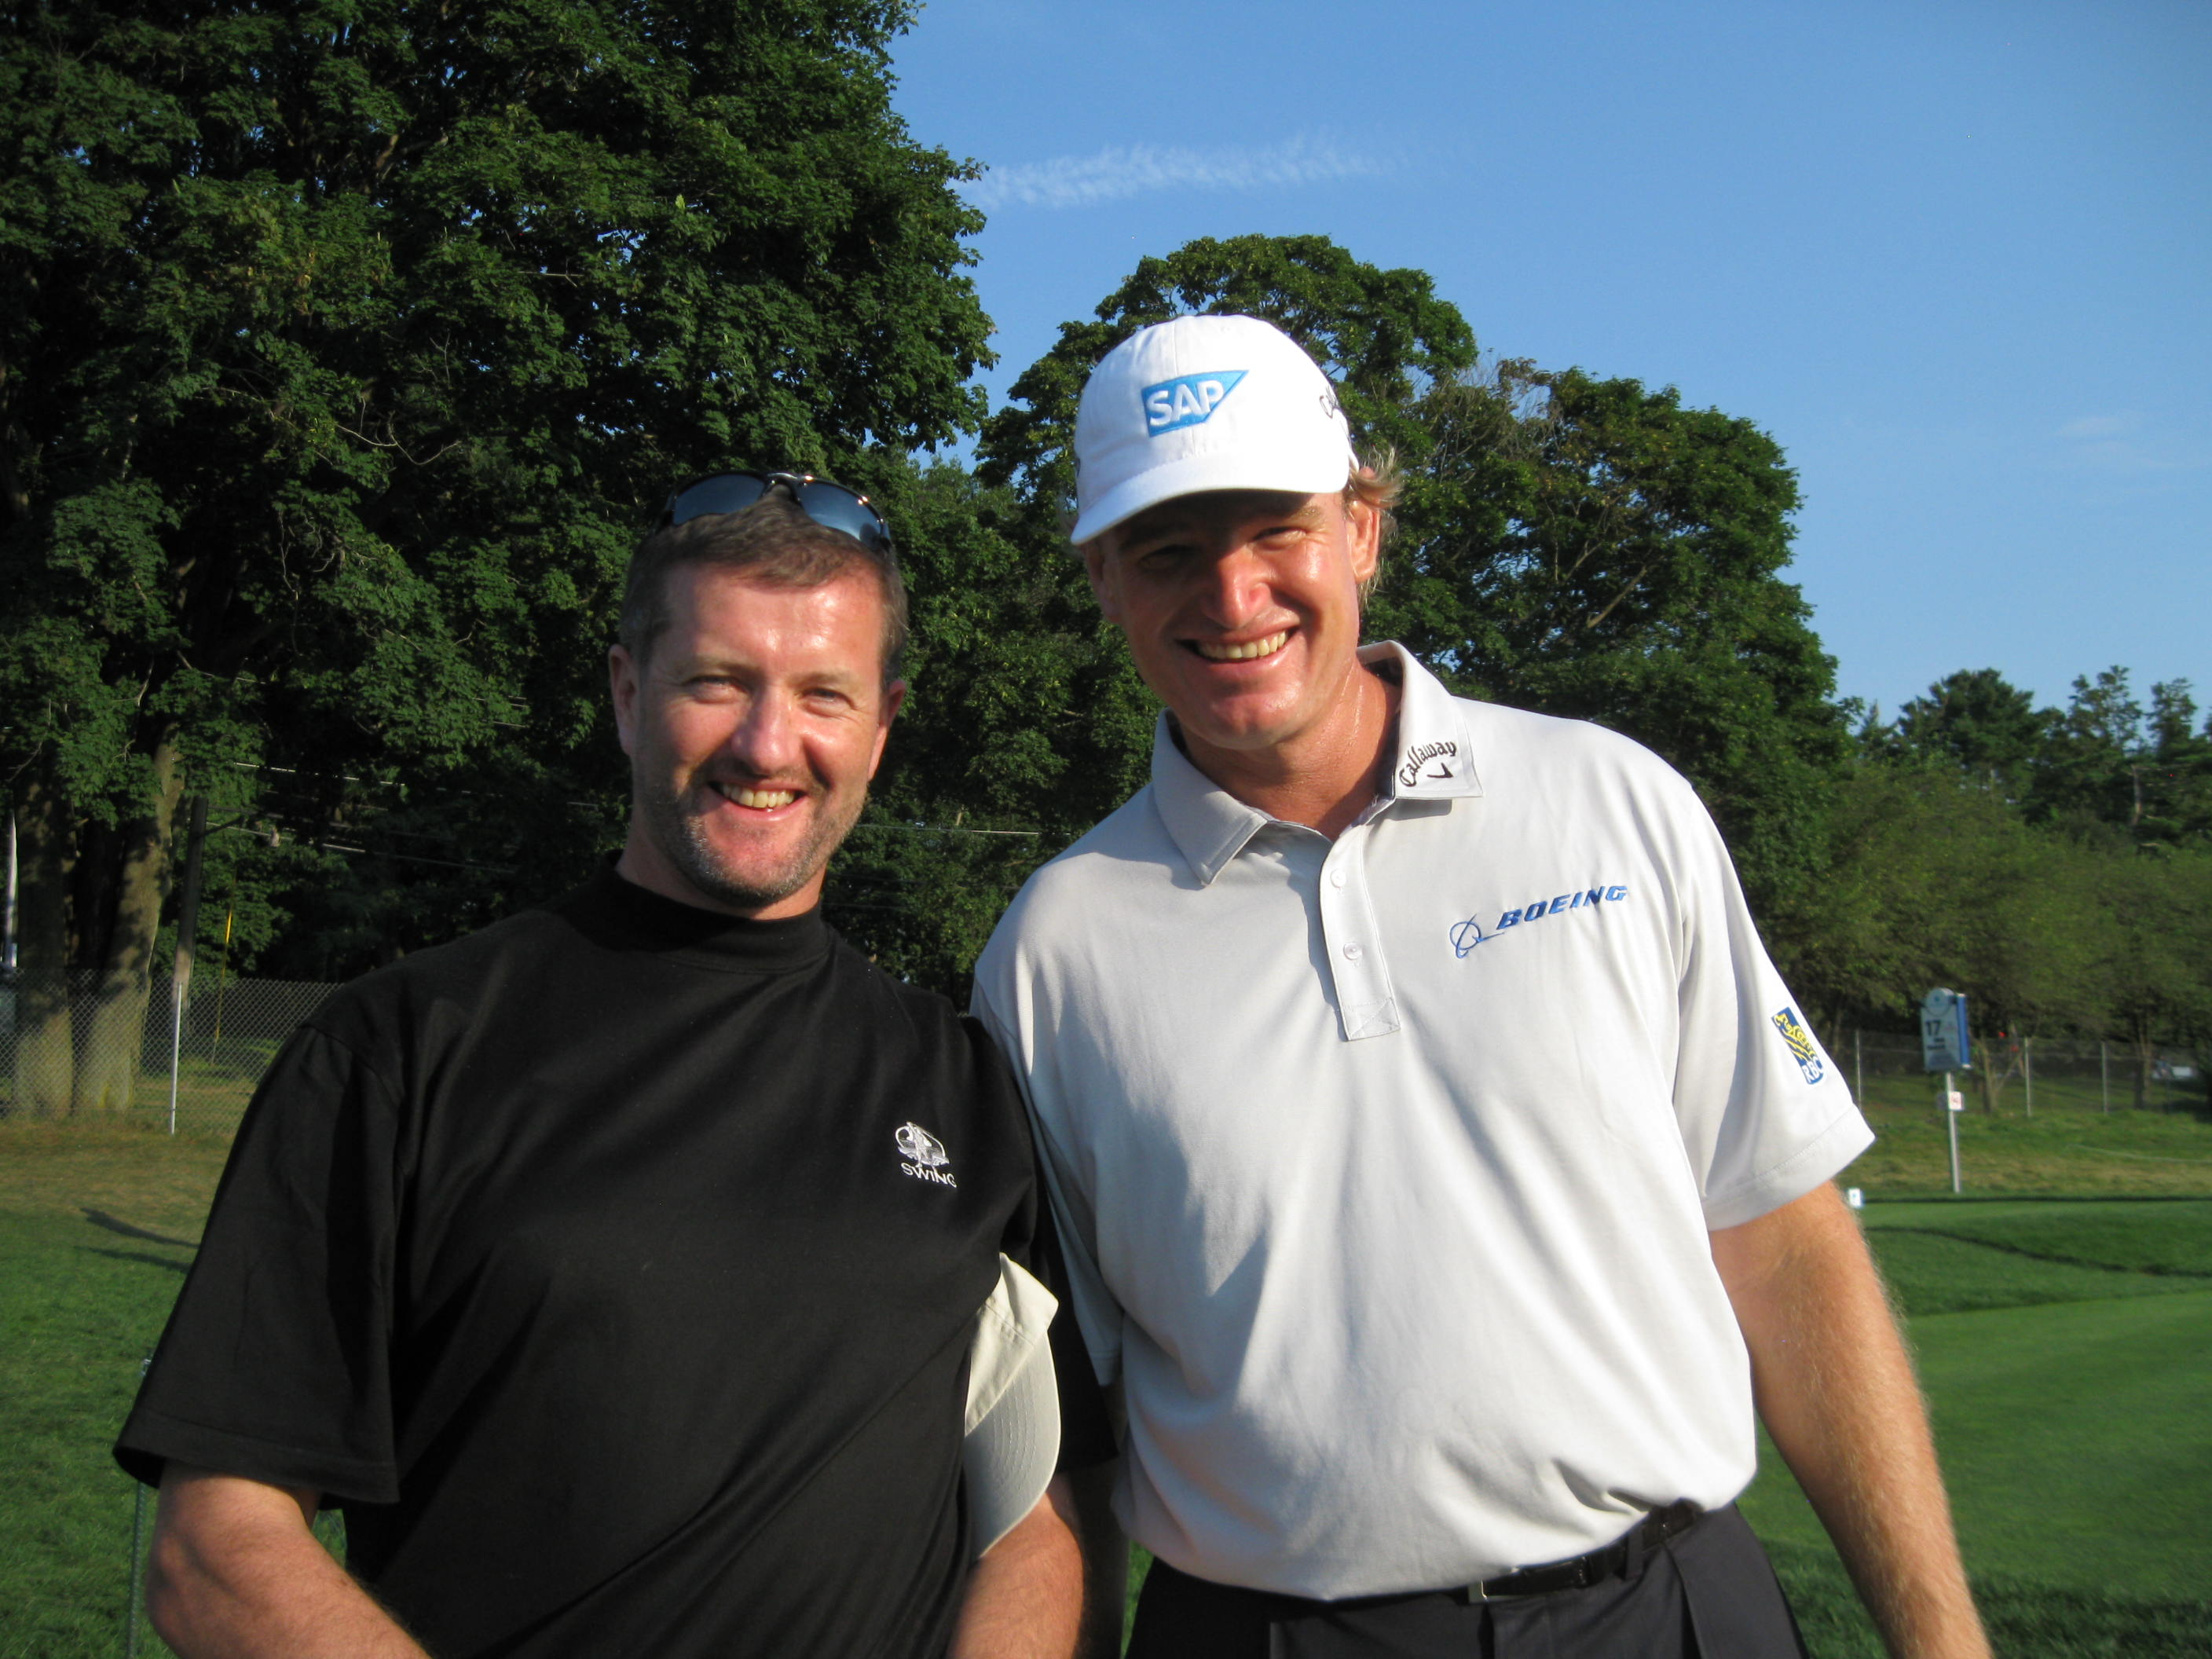 Barclays New York Ernie Els - Swing Golf Ireland - Ireland Golf Holidays